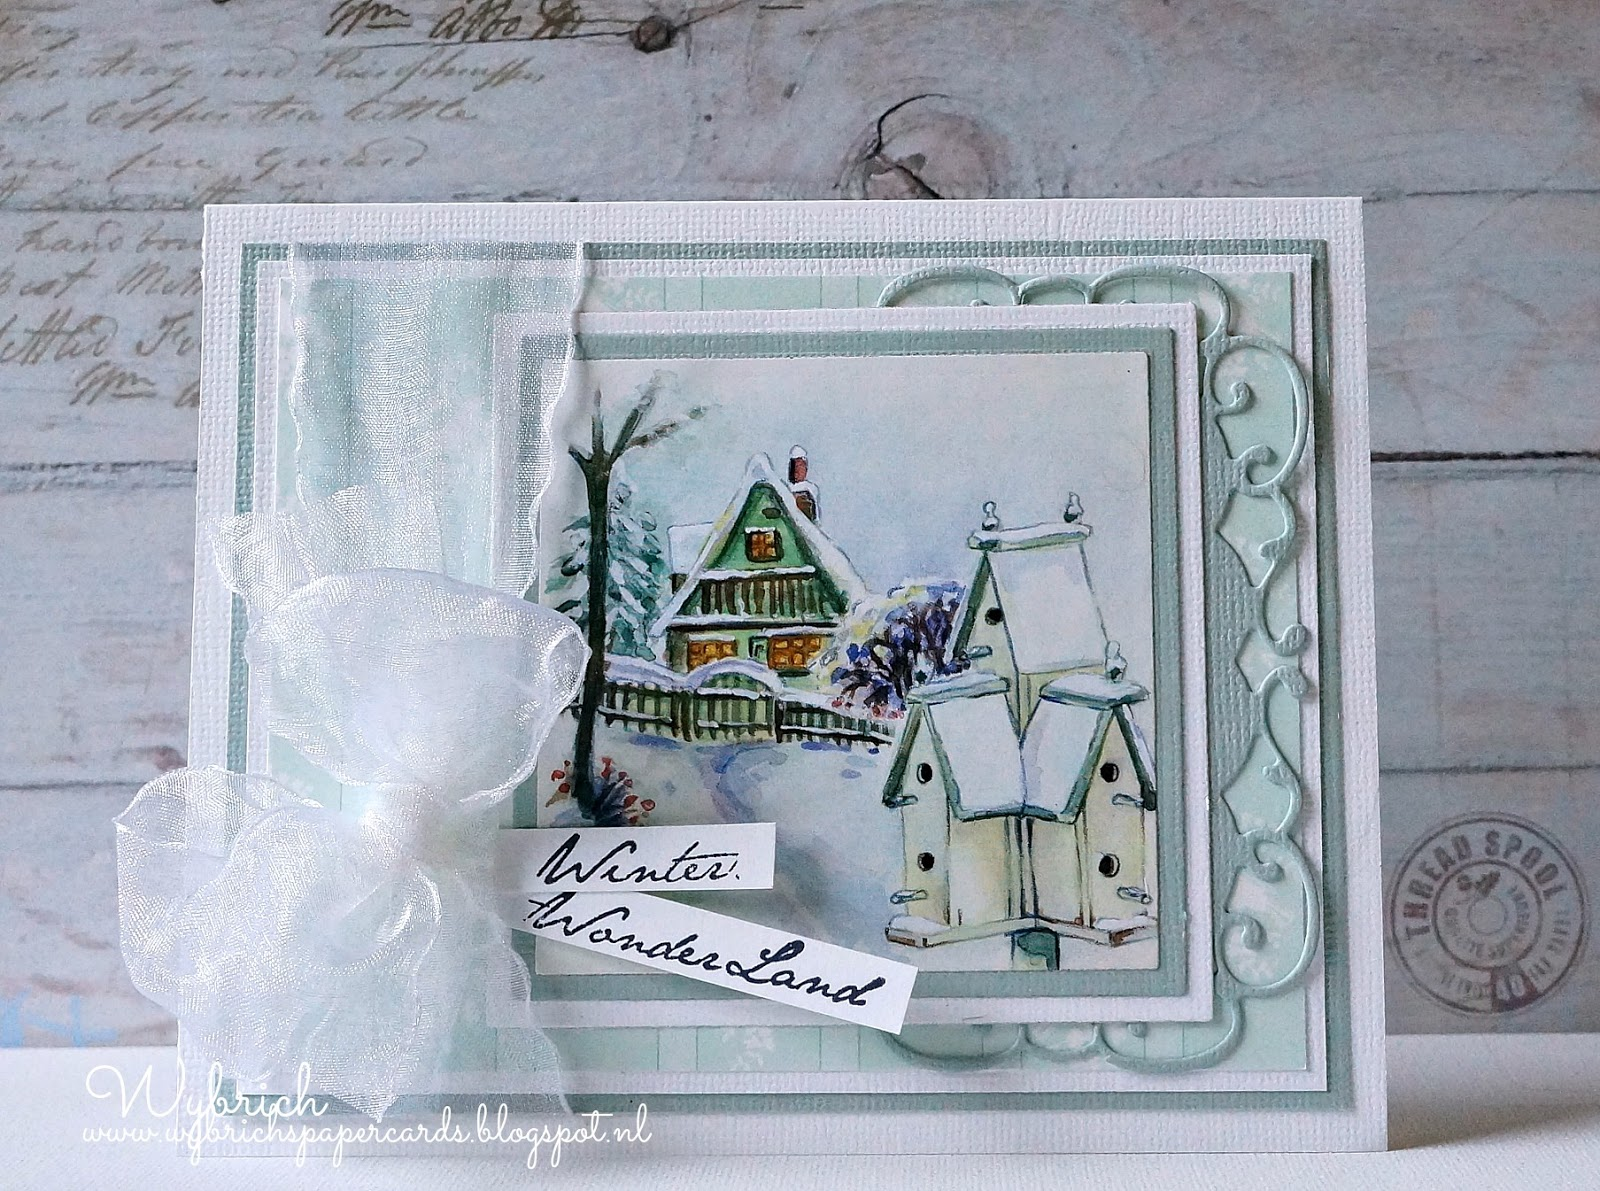 Cards made by wybrich marianne design challenge 121 - Nieuwe home design ...